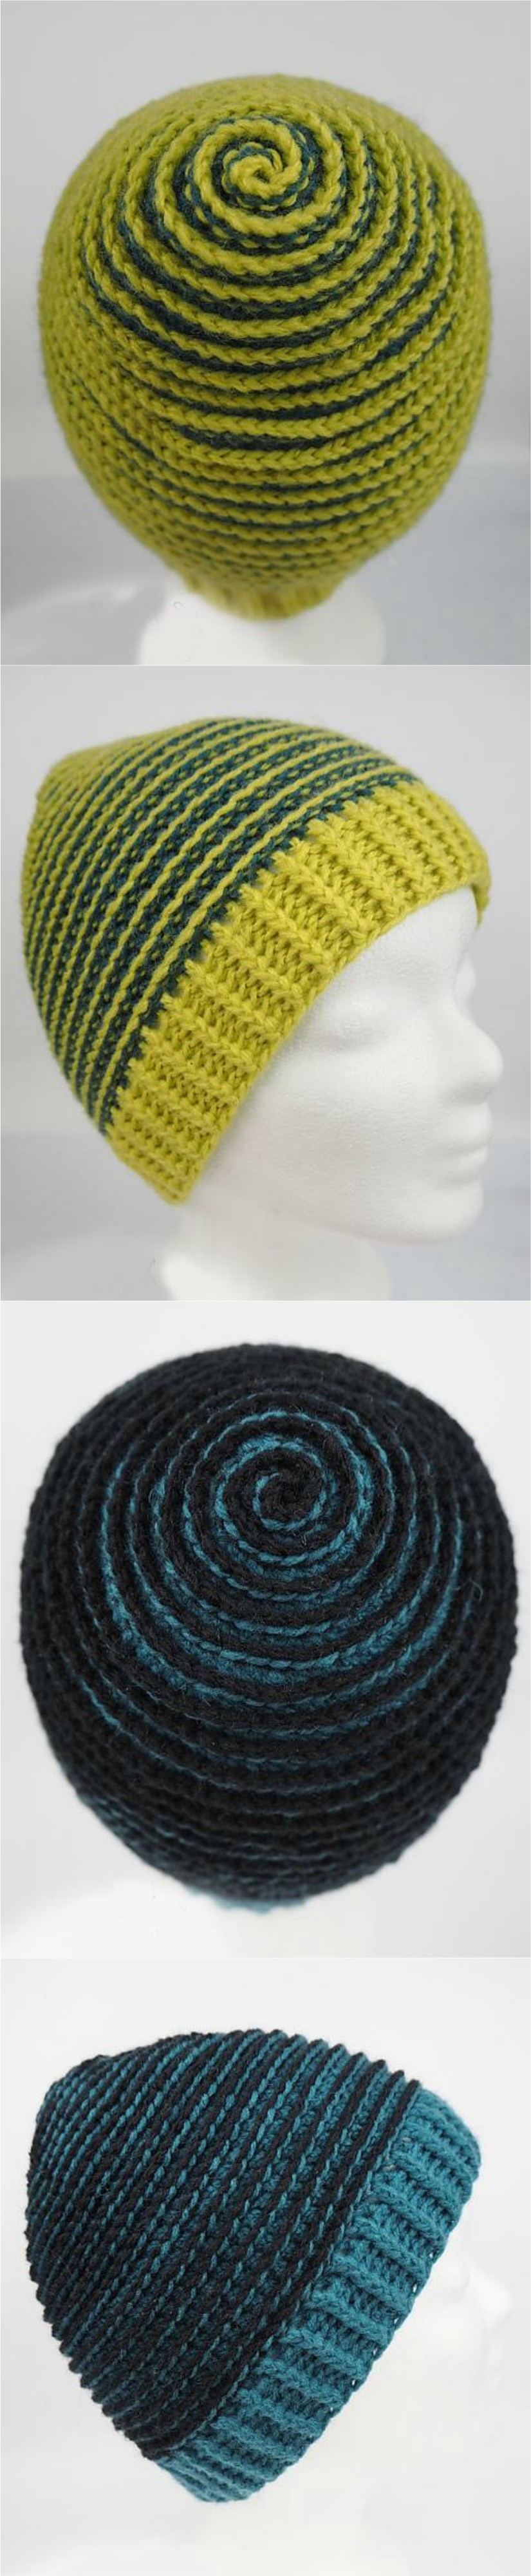 Crochet Spiral Beanie Pretty Ideas